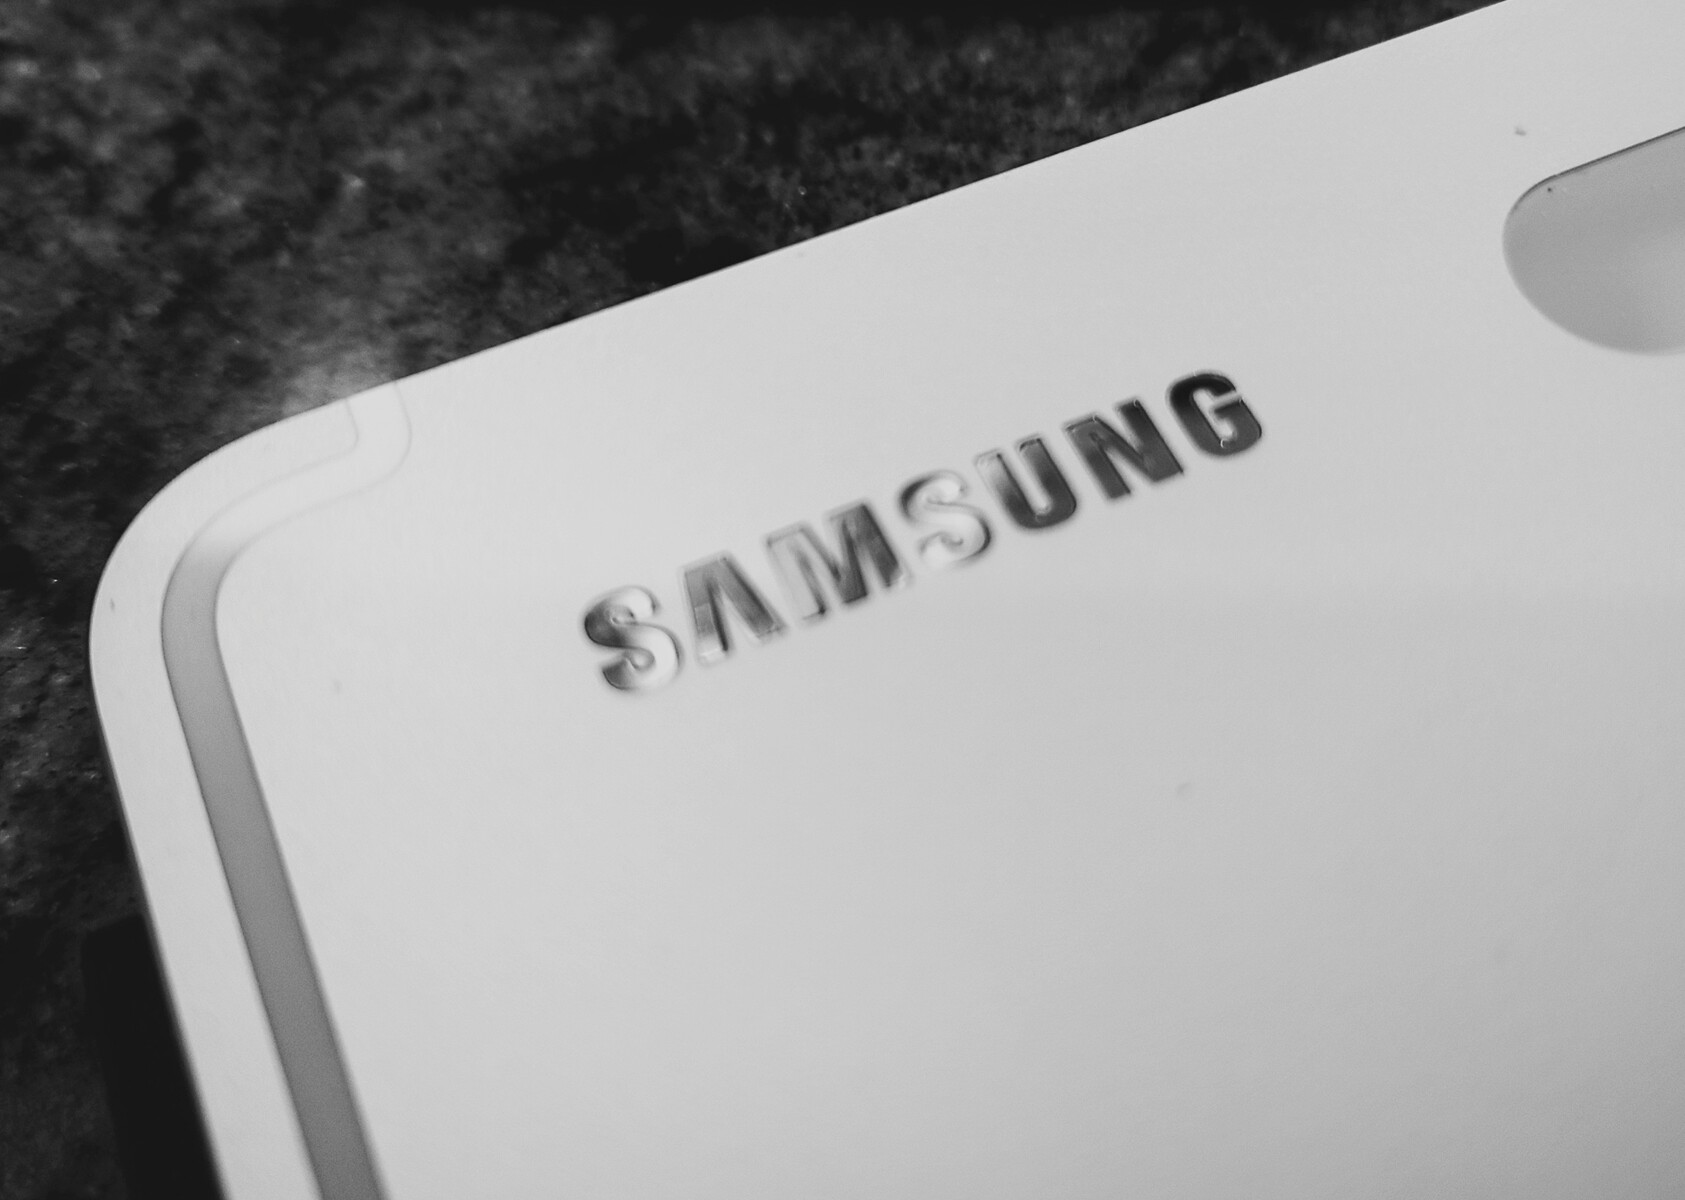 Samsung Electronics flags 58.1% jump in Q3 operating profit